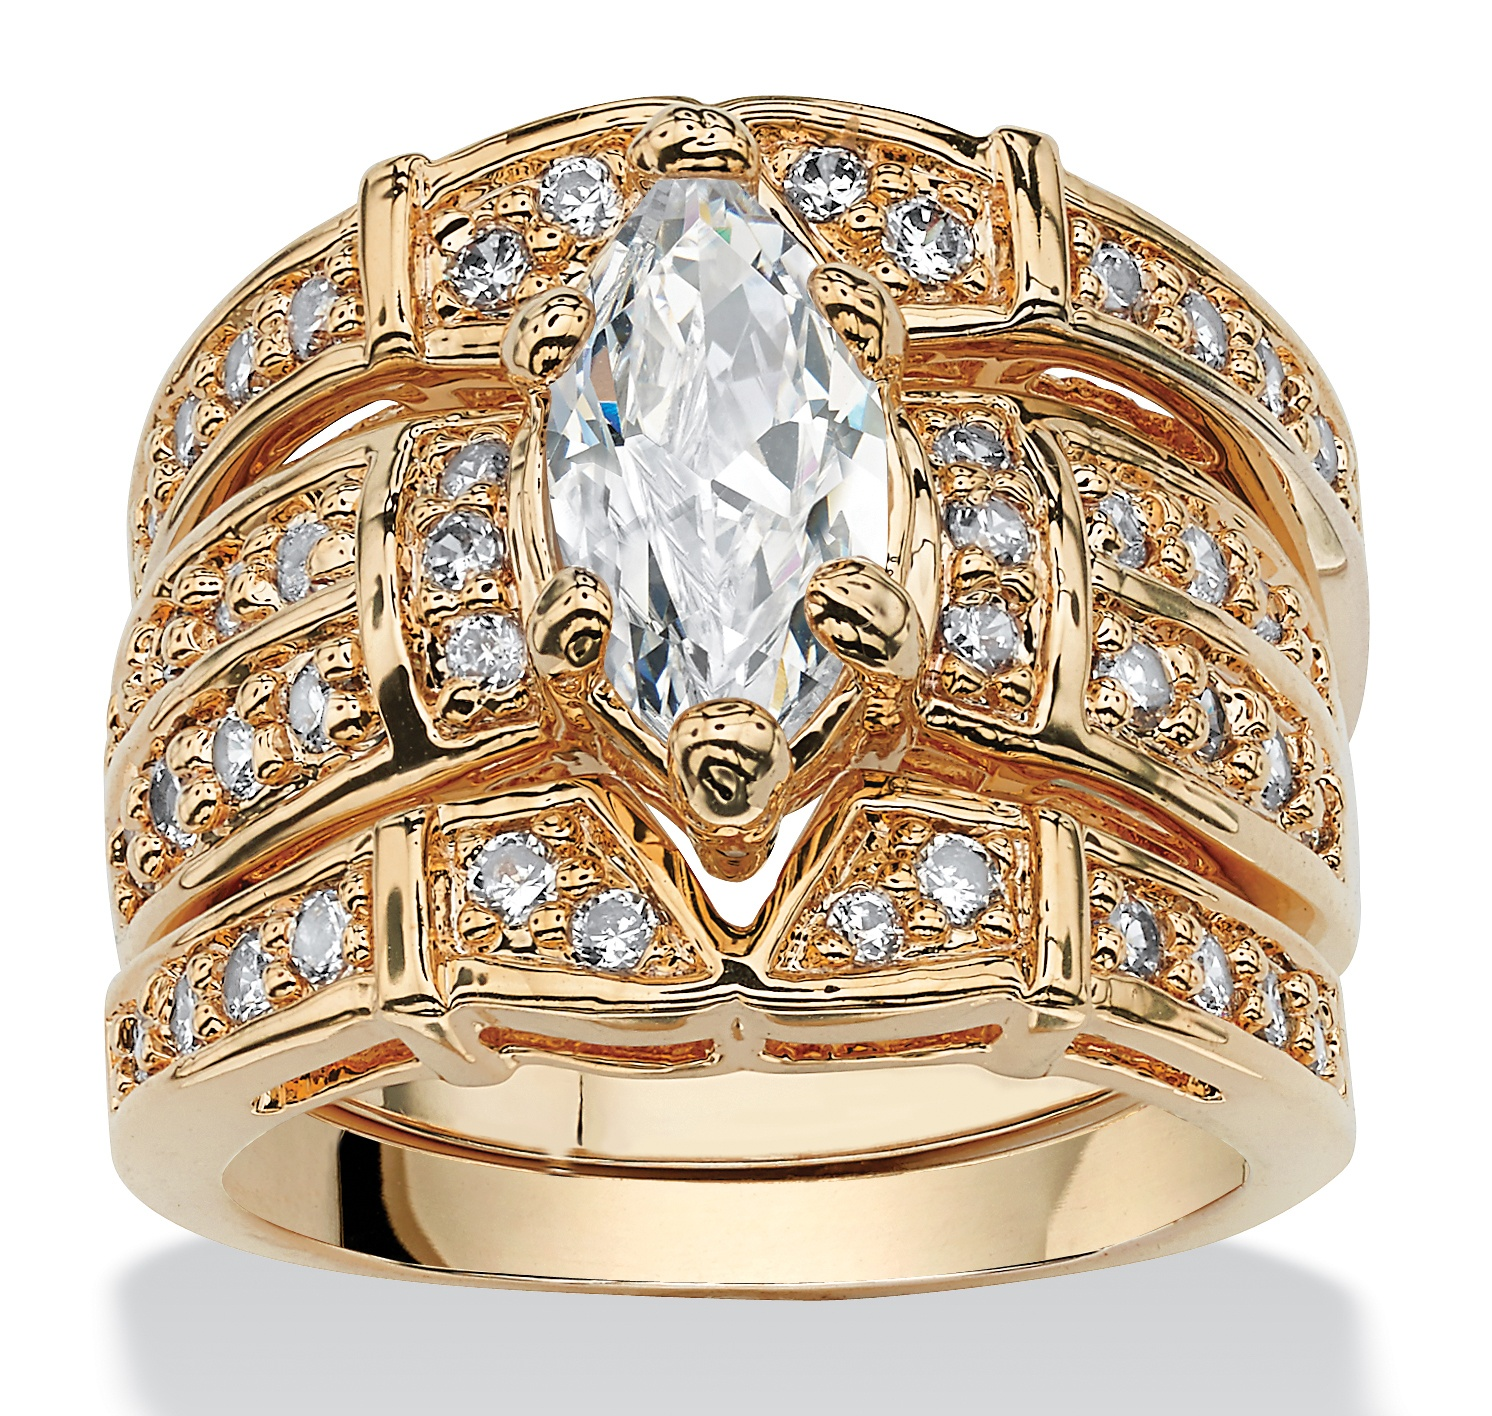 3.05 TCW Marquise-Cut Cubic Zirconia 14k Gold-Plated Bridal Ring Set